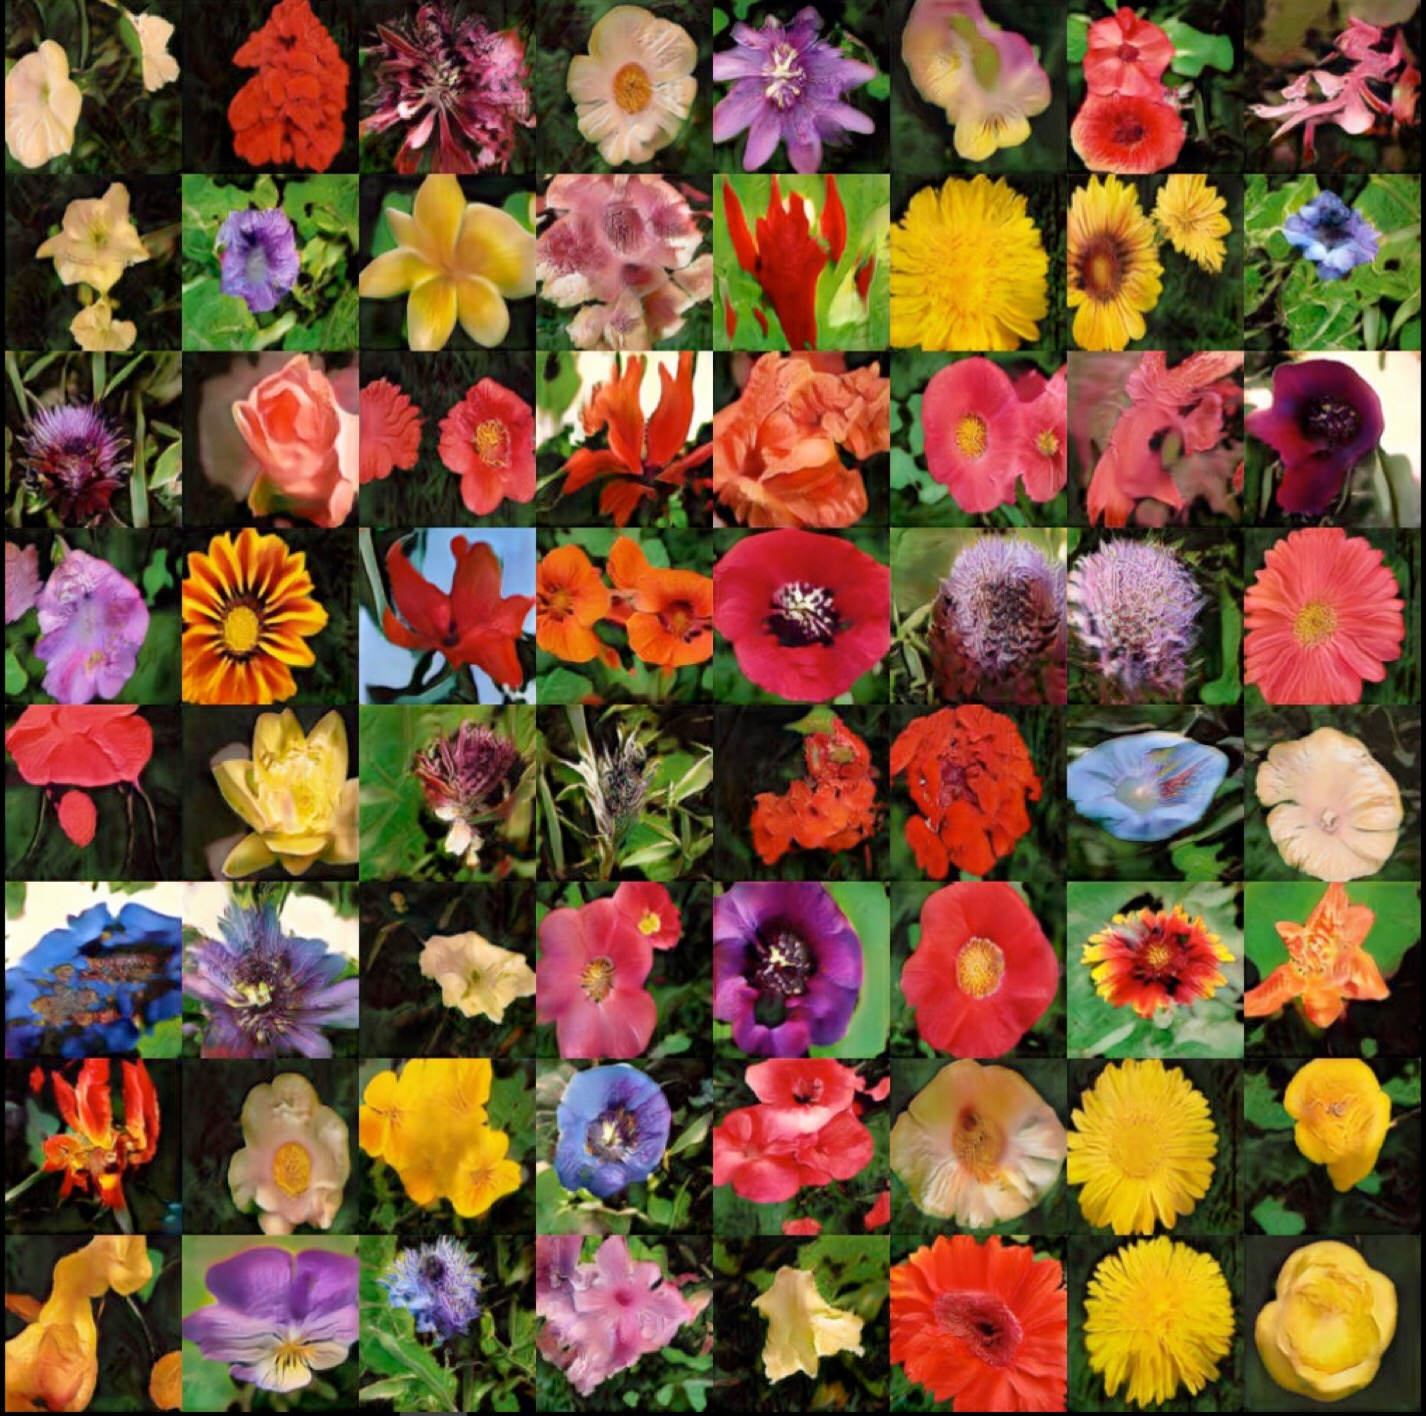 Sample from the flowers dataset